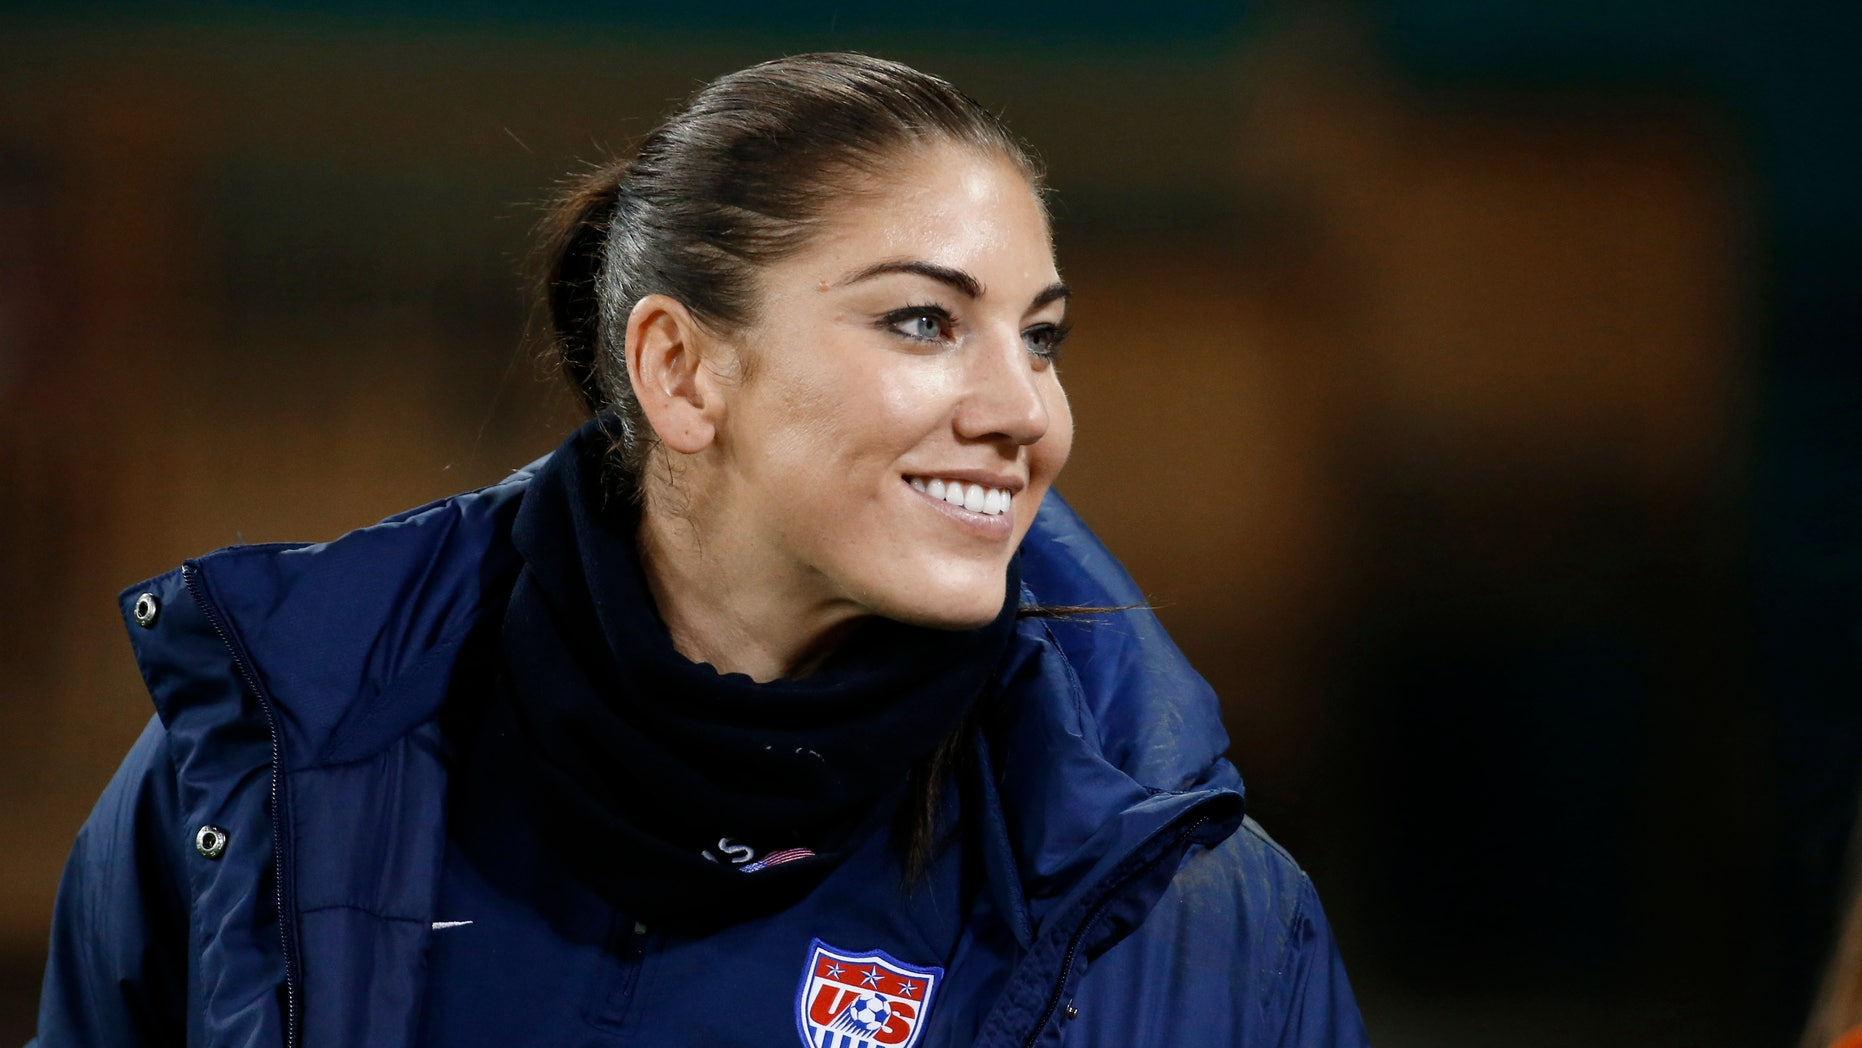 Oct. 20, 2014:  U.S. goalkeeper Hope Solo stands on the sidelines before a CONCACAF soccer match against Haiti in Washington.